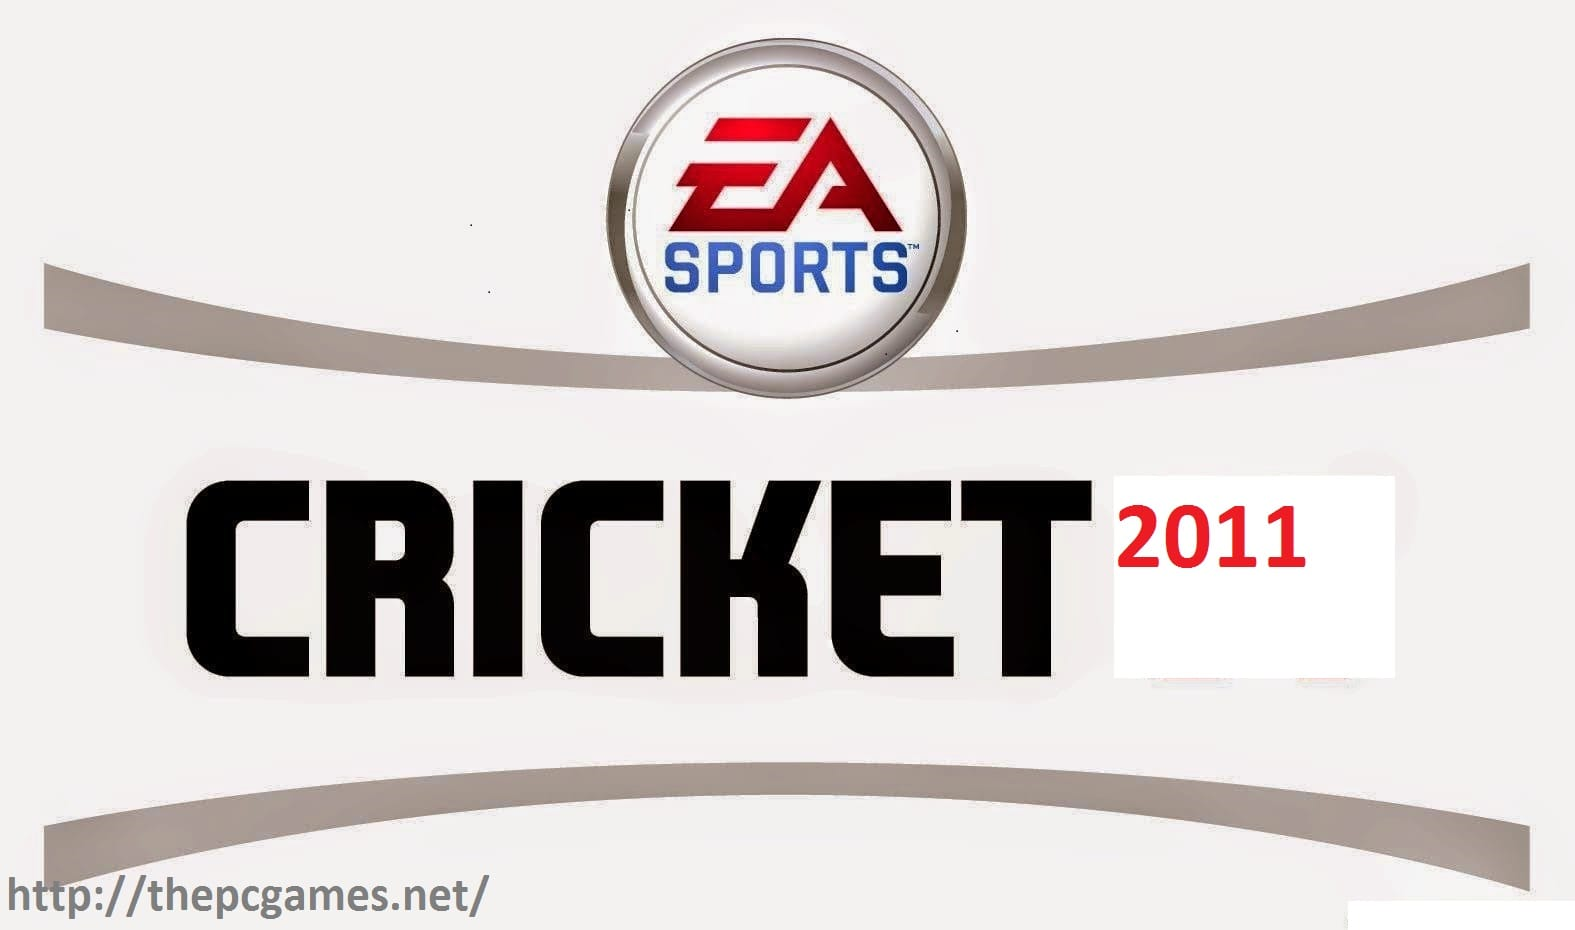 Official icc world cup 2011 videogame unveiled.